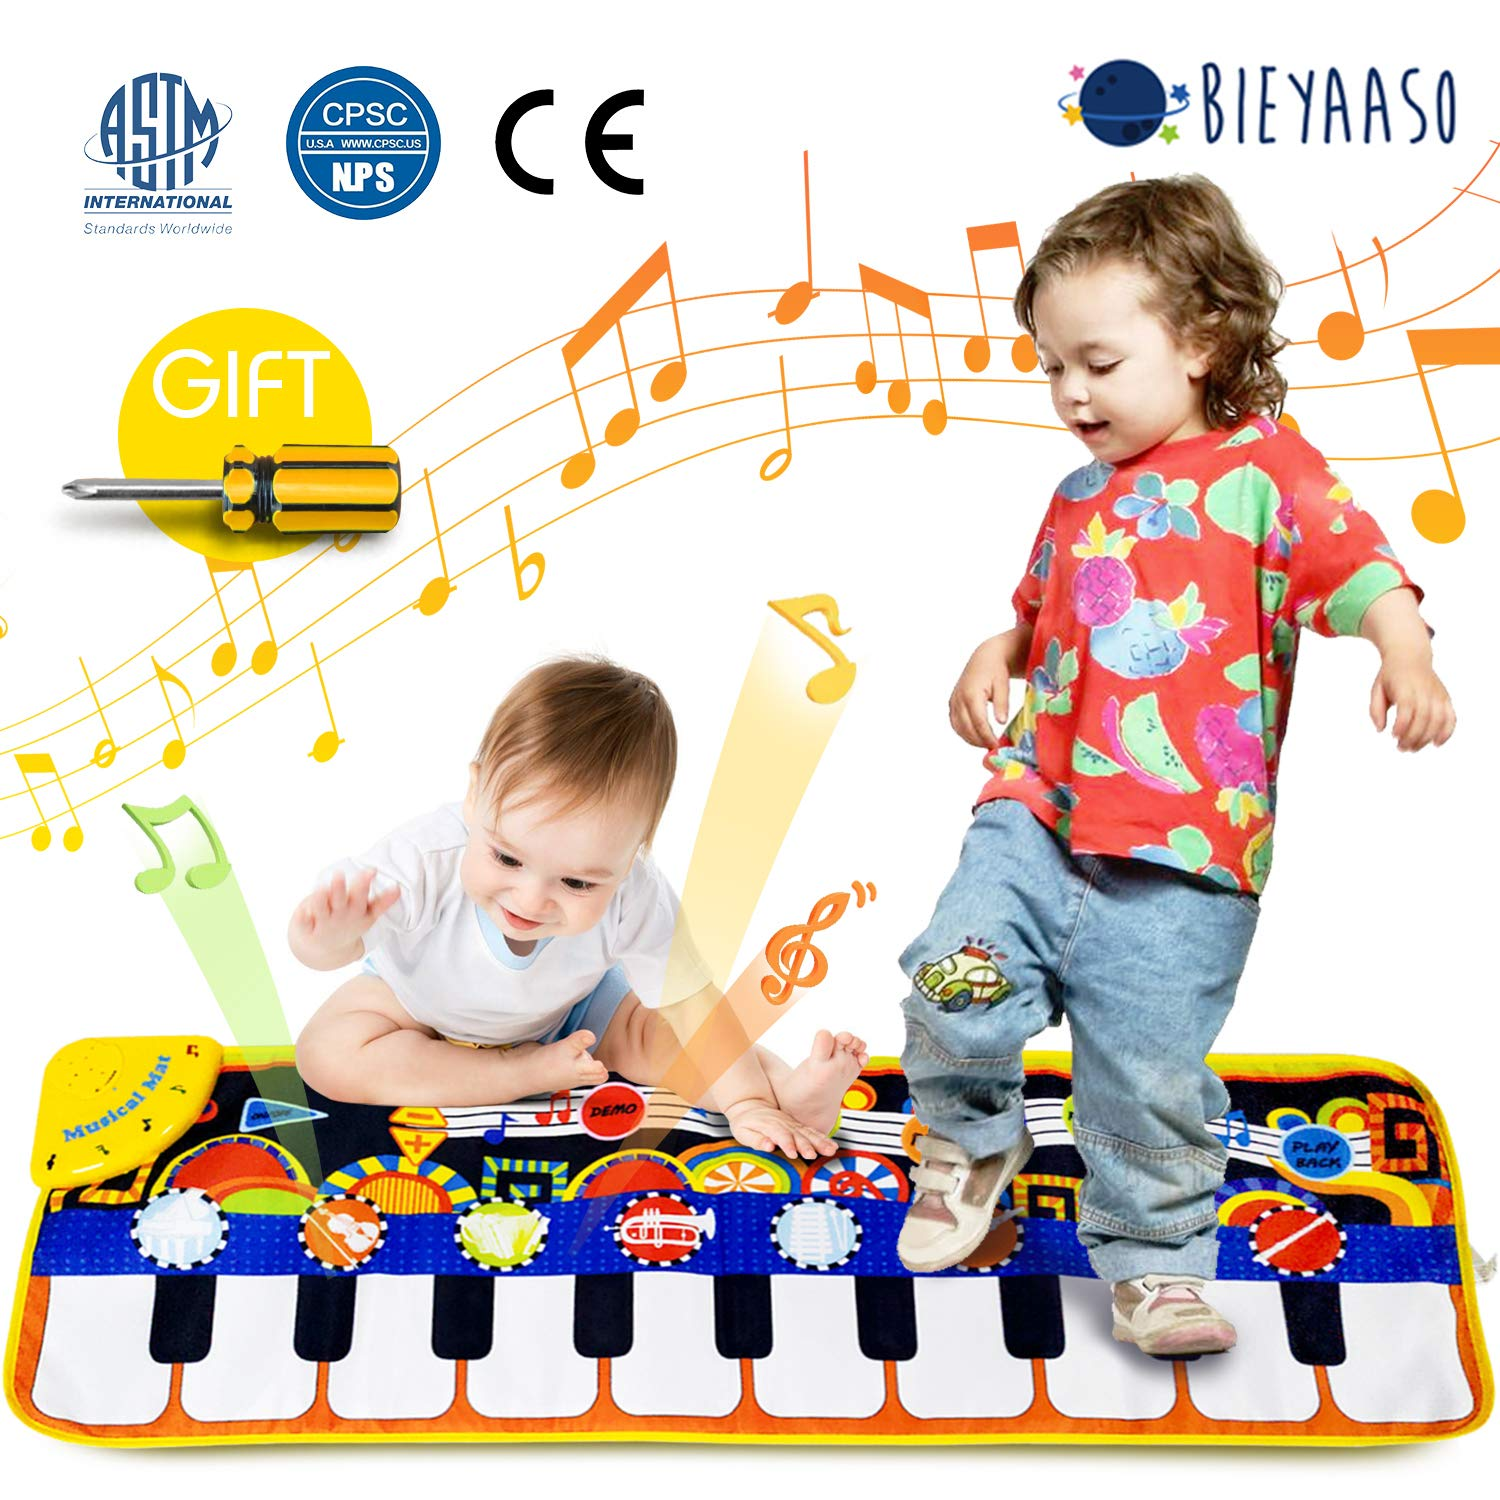 Bieyaaso Musical Piano Mat 19 Keys Piano Keyboard Play Mat Safety Kids Early Education Music Toys Music Mat Build-in Speaker & Recording Music Dance Mat Surprised Gift For Girls & Boys 43.3'' X14.2'' by Bieyaaso